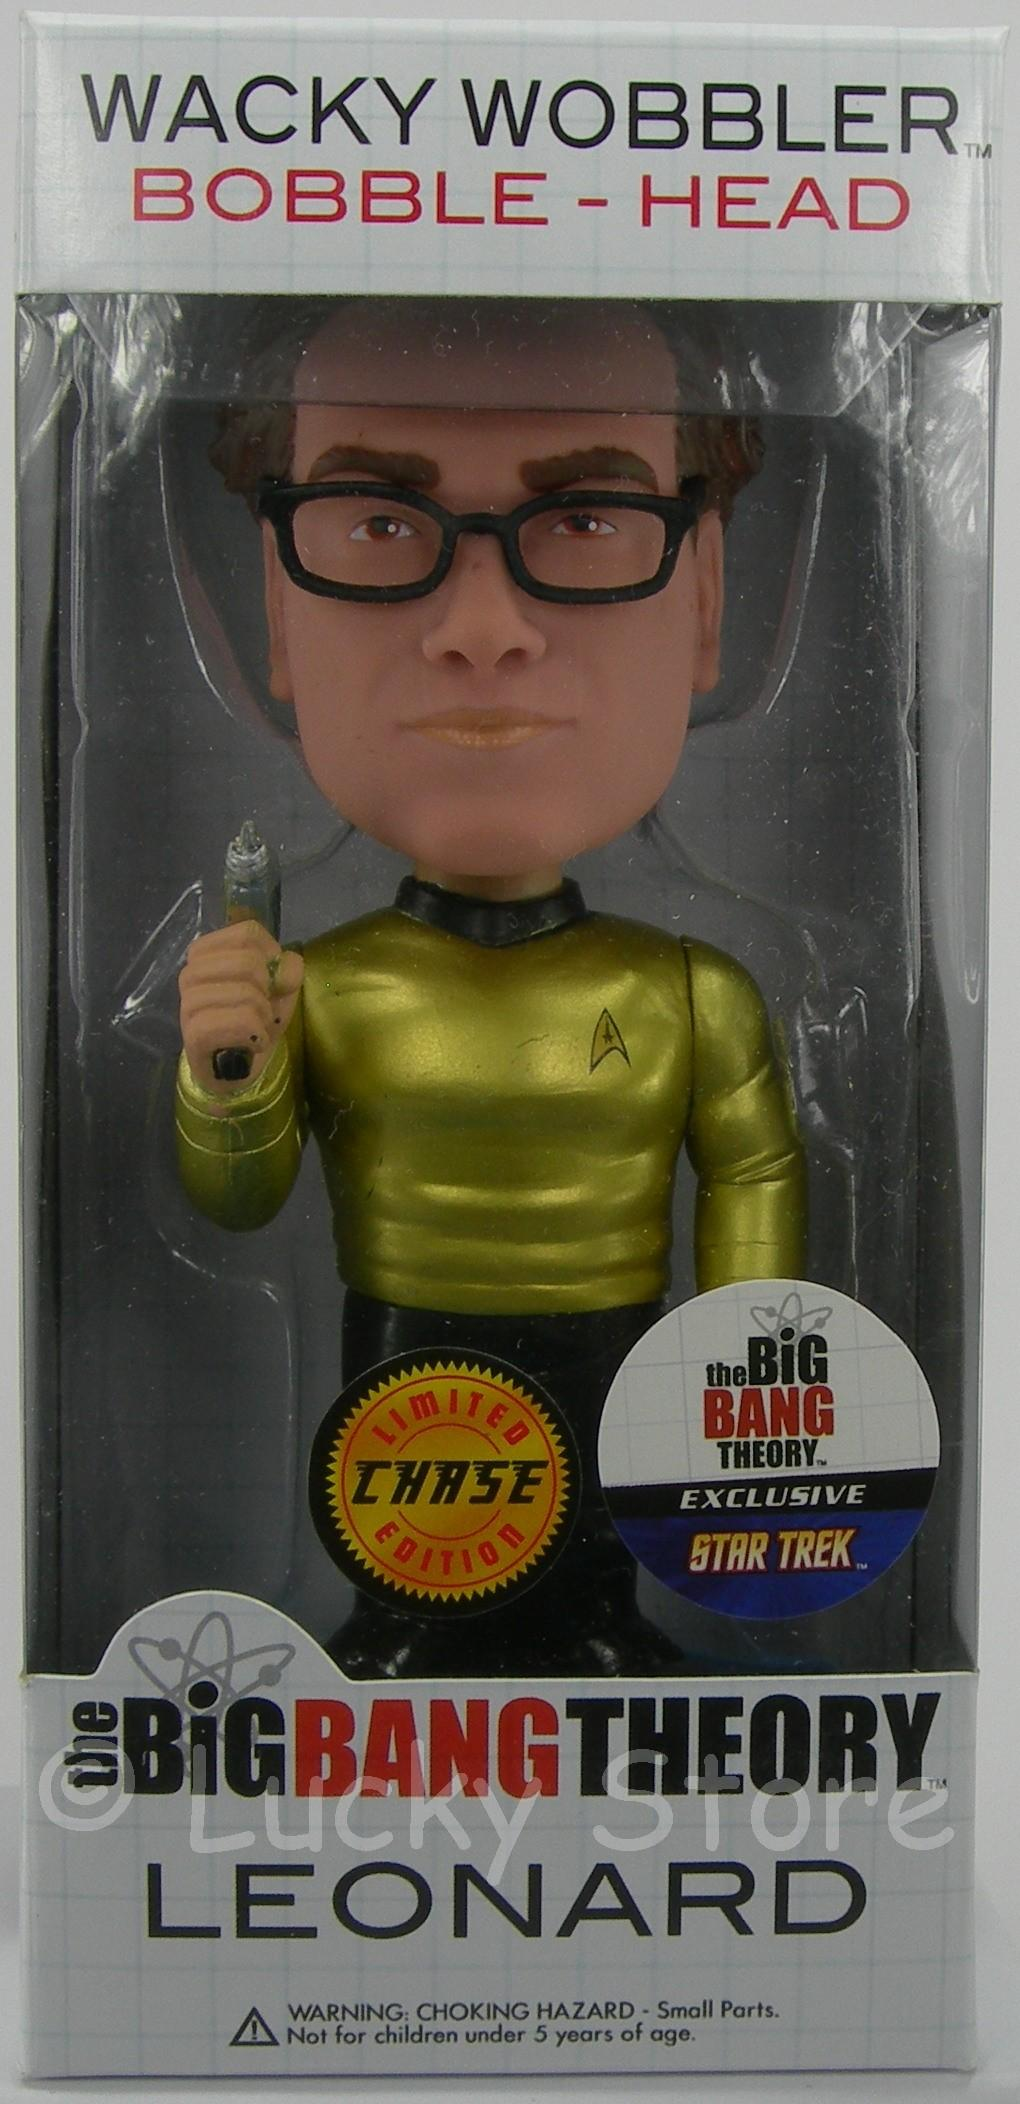 Big Bang Theory RARO Leonard Star Trek metallic bobble head figure 18 cm Funko